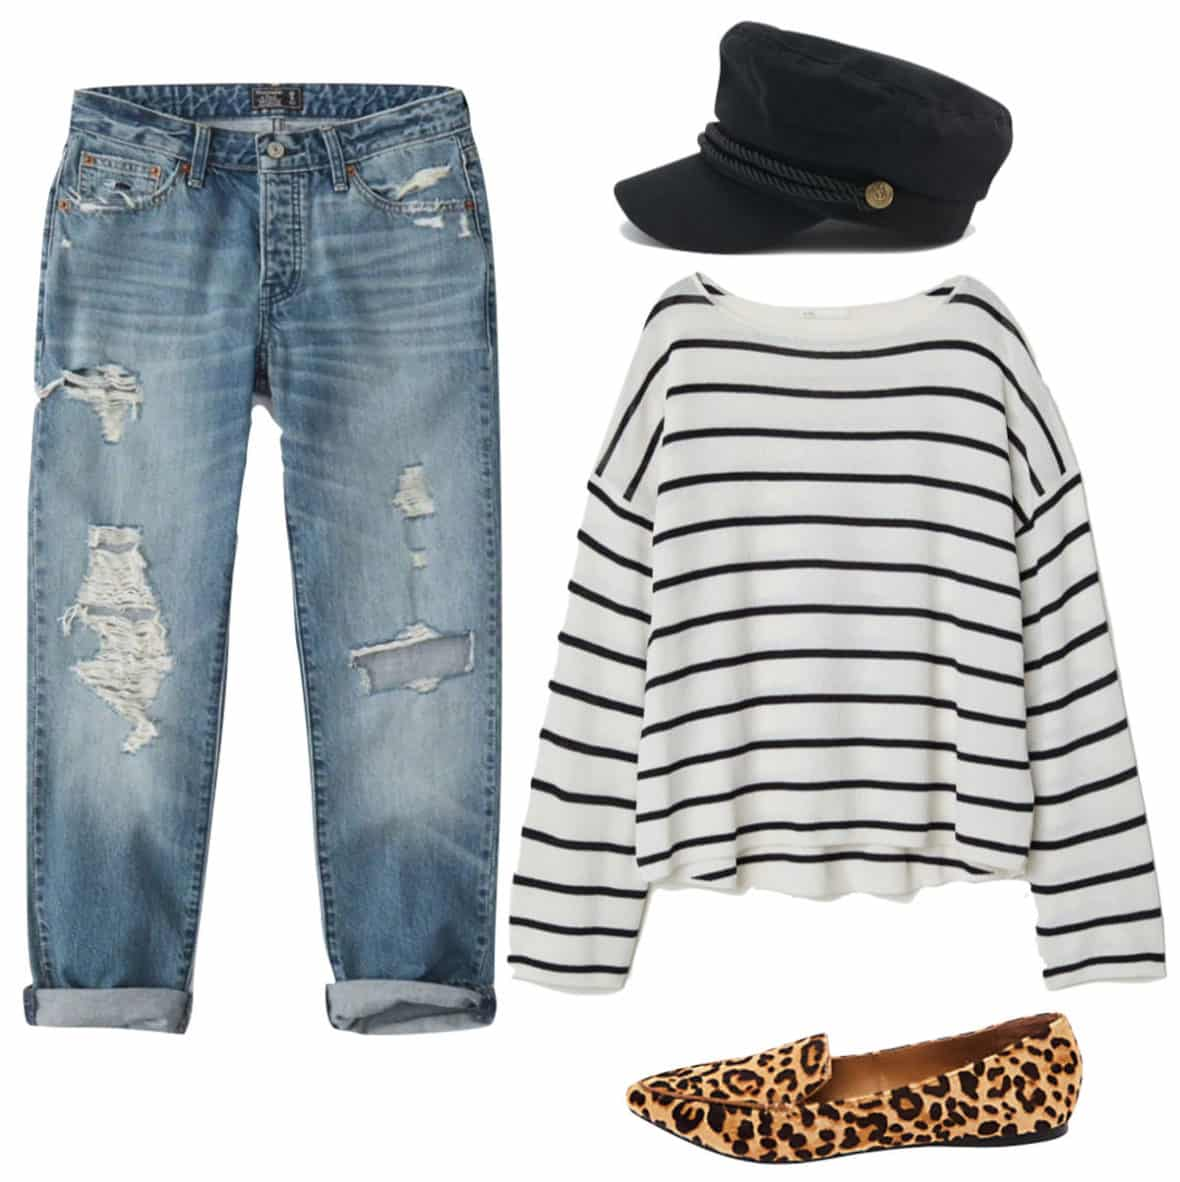 Jasmine Tookes Outfit: ripped boyfriend jeans, striped sweater, black cabby hat, and leopard print flats